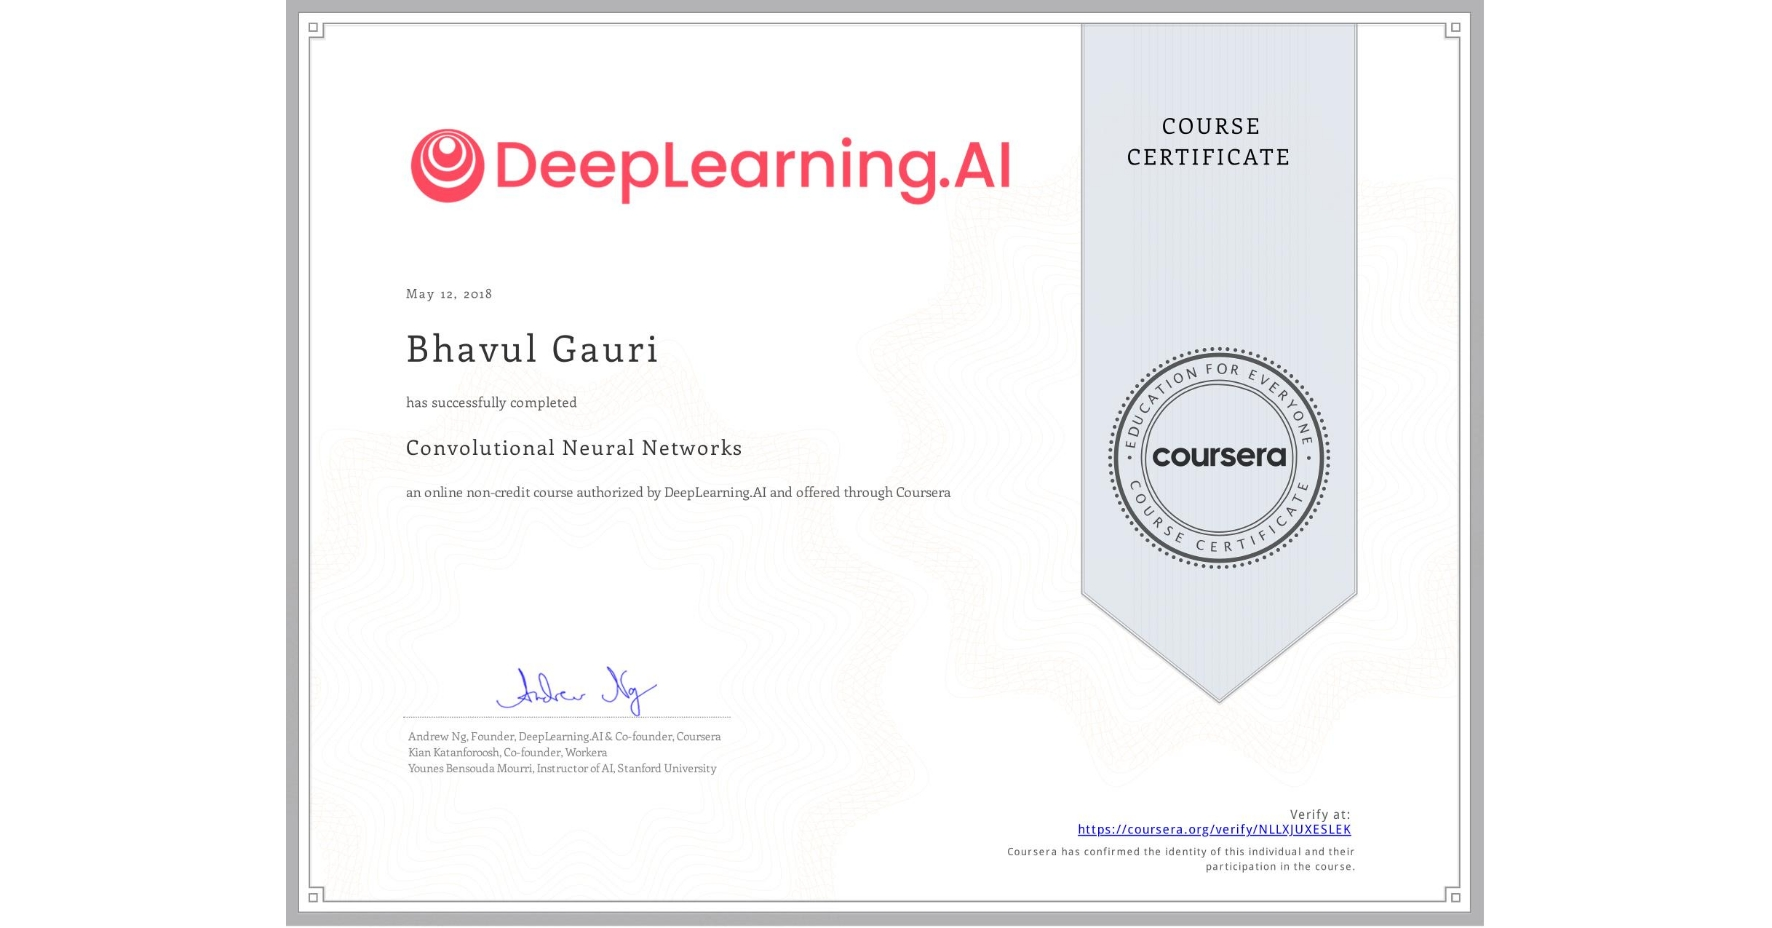 View certificate for Bhavul Gauri, Convolutional Neural Networks, an online non-credit course authorized by DeepLearning.AI and offered through Coursera